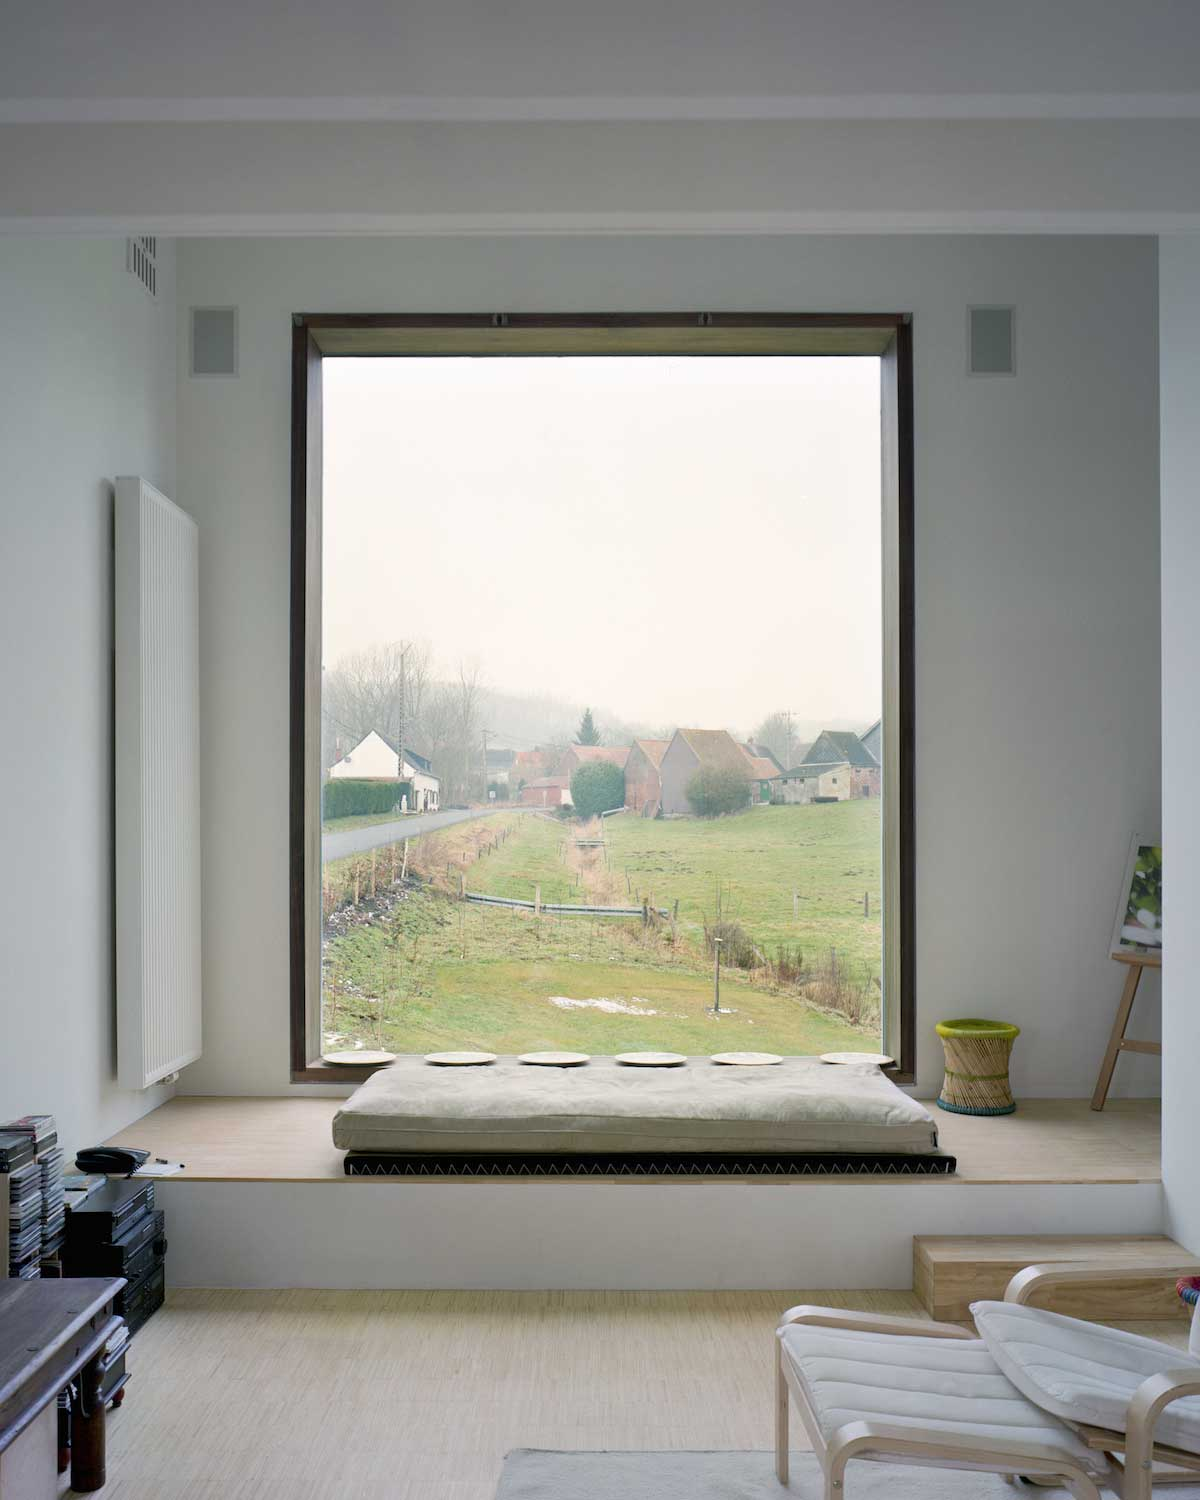 Roversi Stufe Stories On Design Window Seats Curated By Yellowtrace